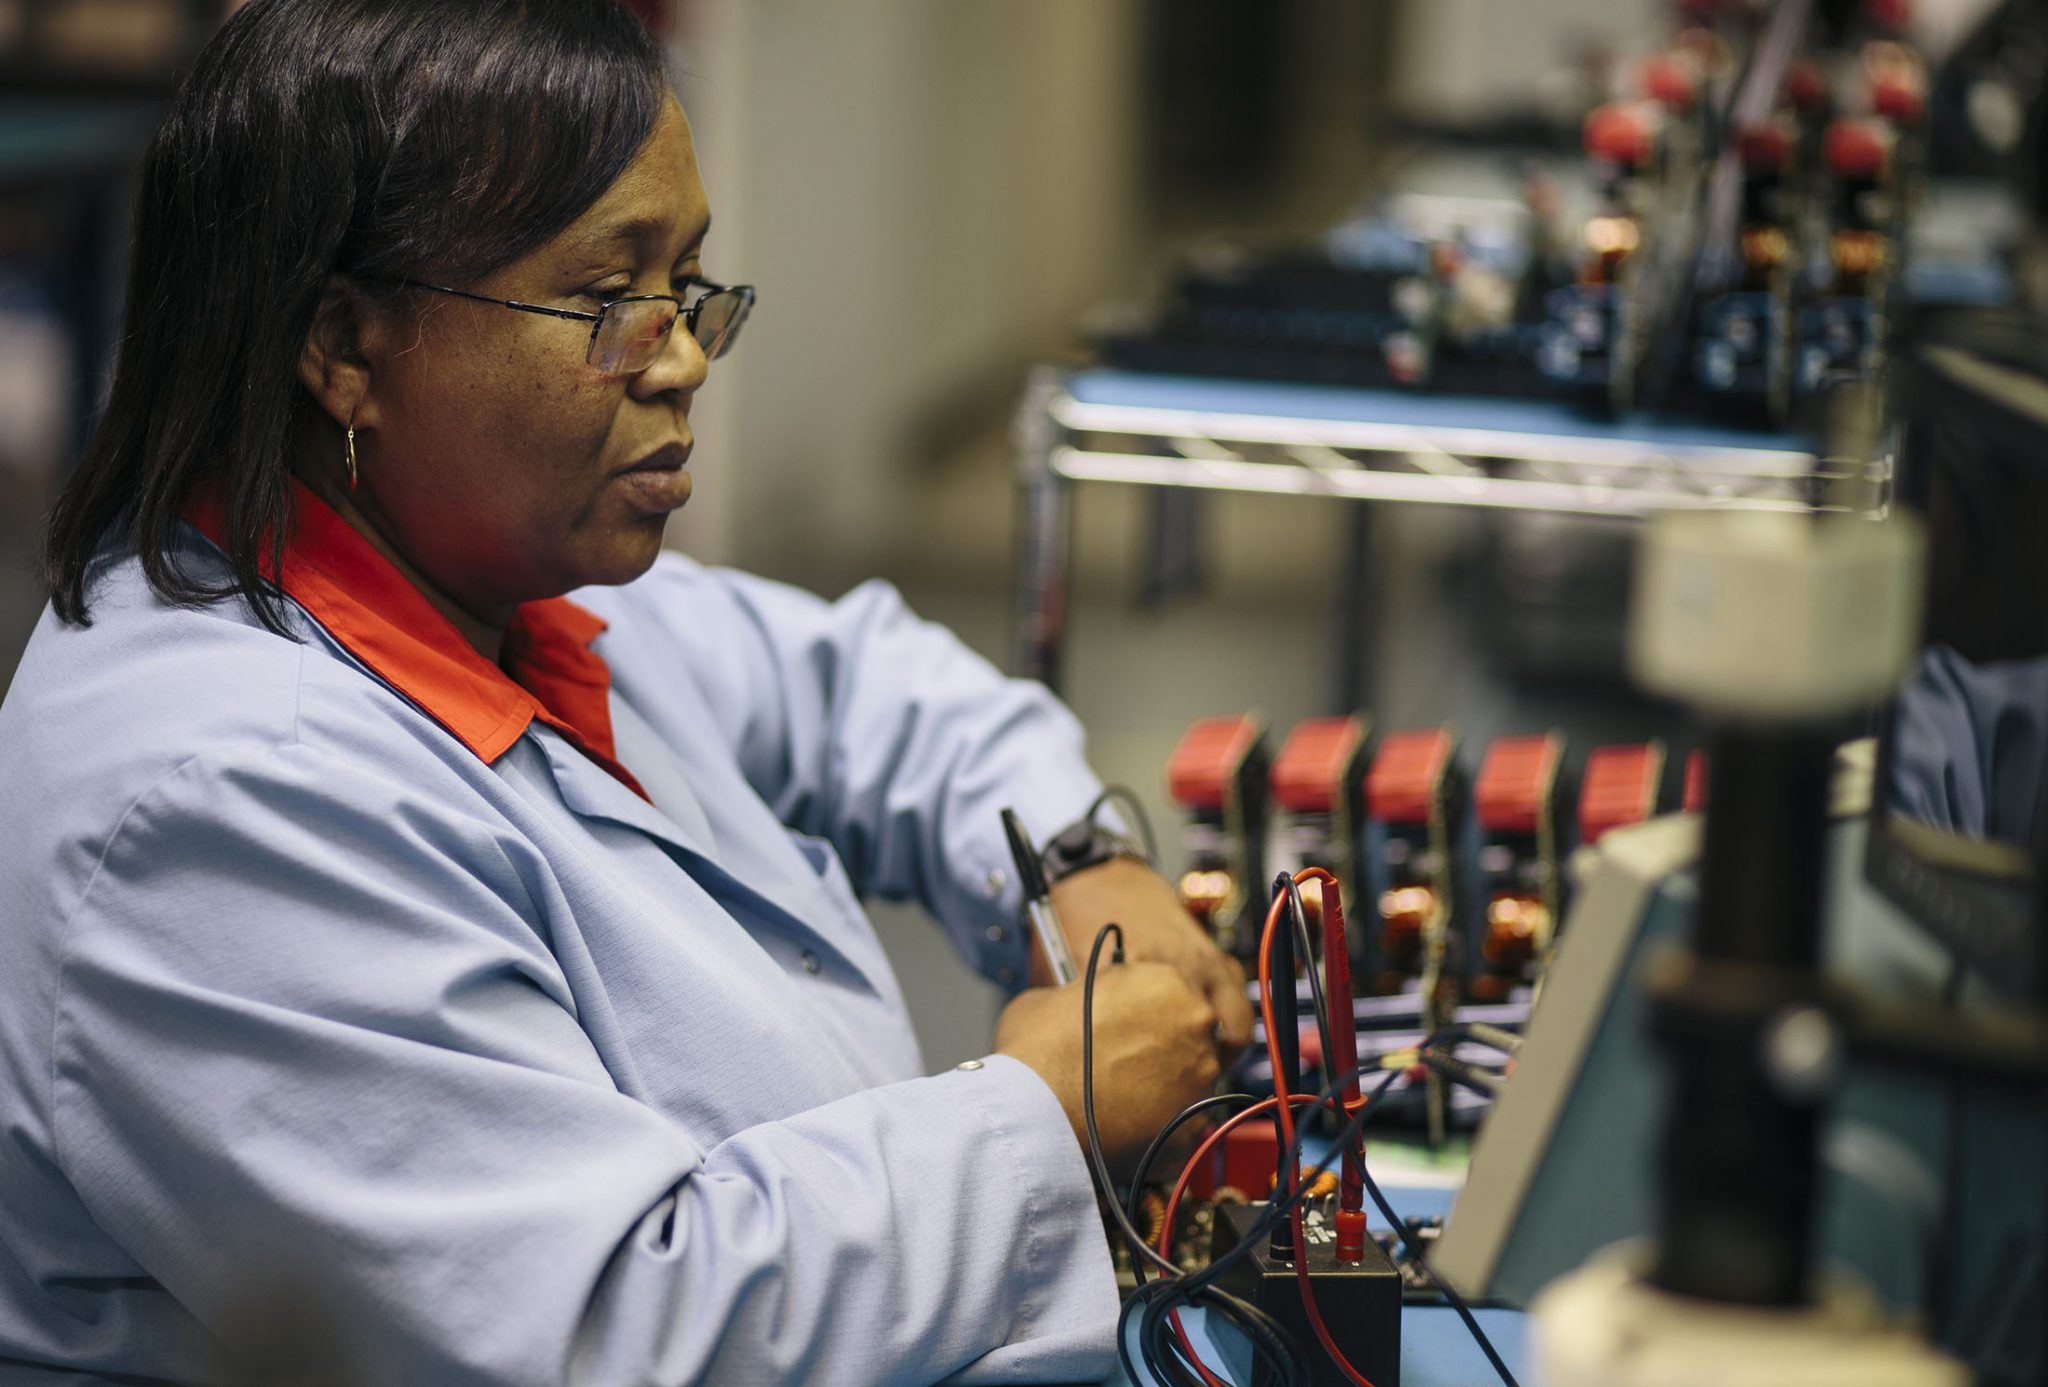 Connie Stewart, 54, runs tests on the circuit board she is assembling in the lab at US Hybrid, an advanced vehicle powertrain supplier in Torrance, California.